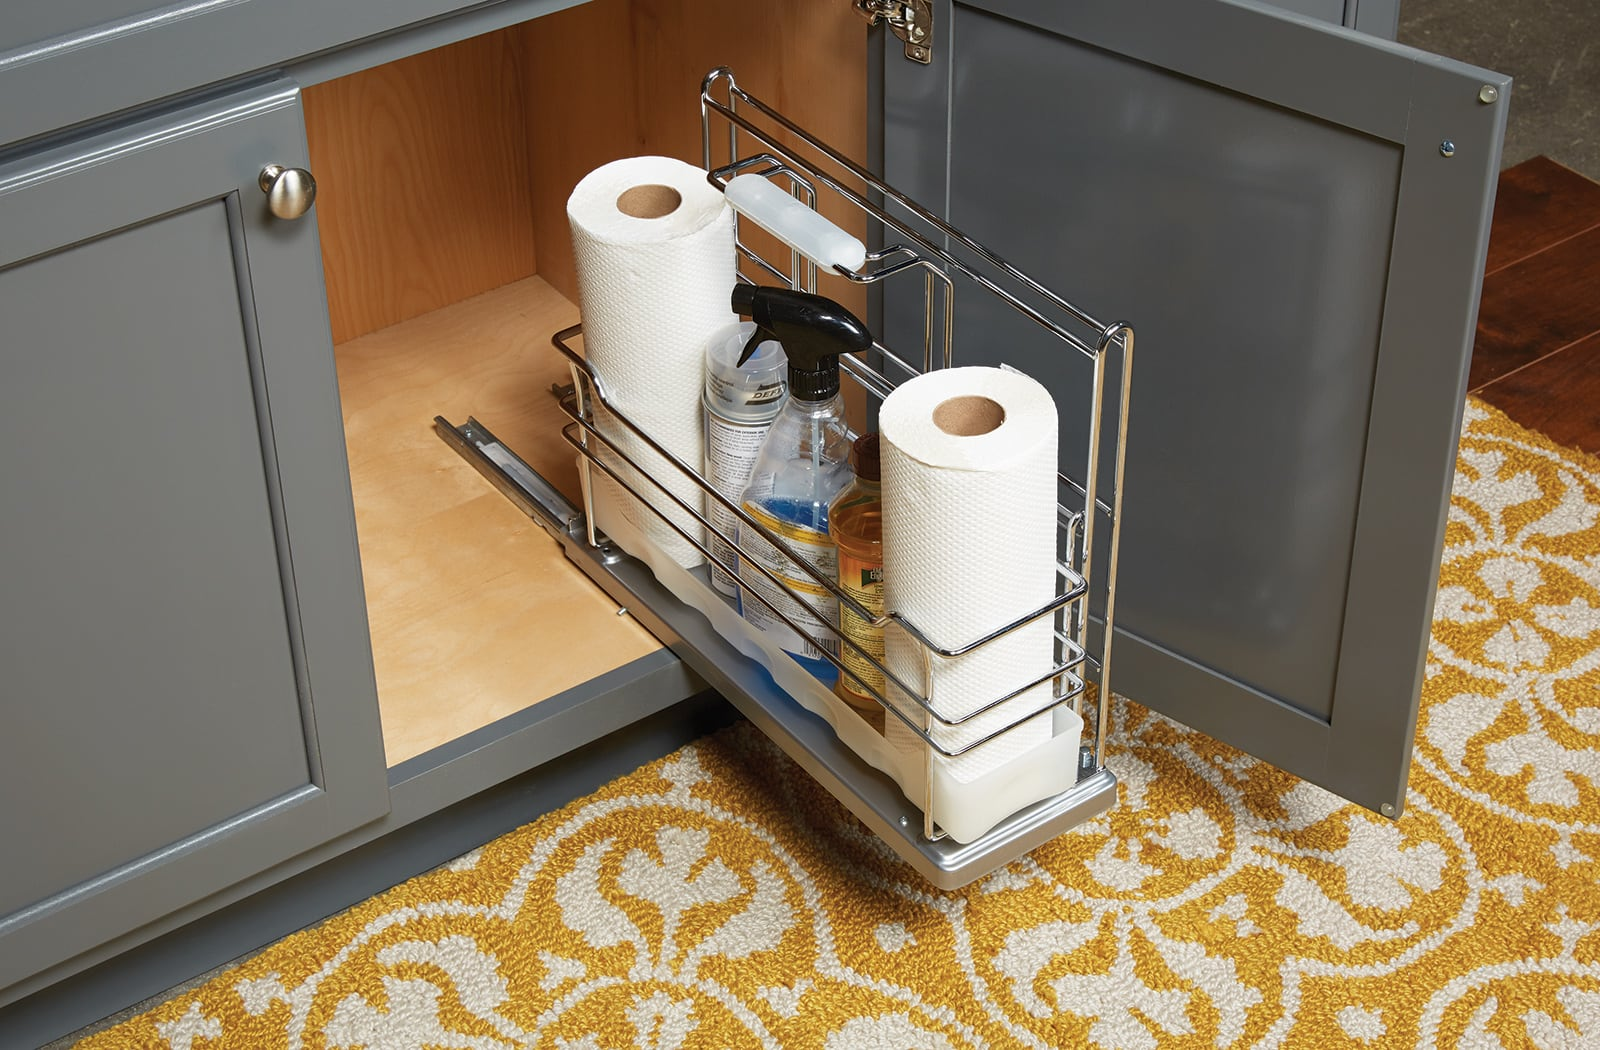 bathroom undersink caddy for paper towels and cleaners